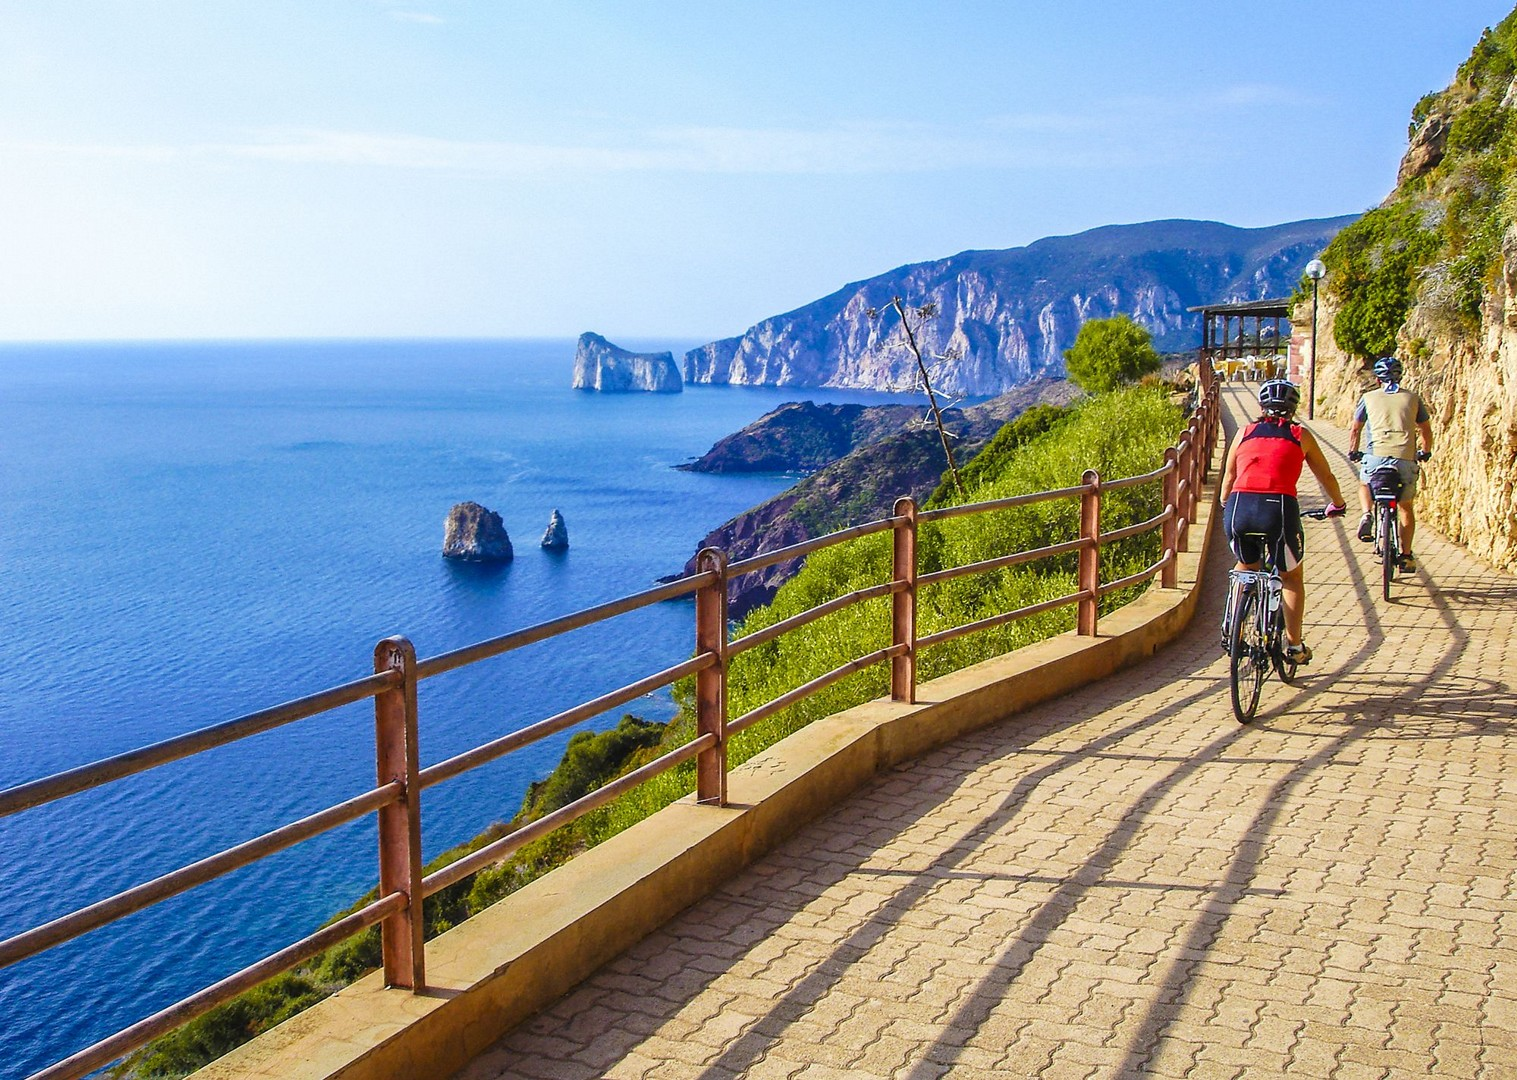 cycling-in-sardinia-italy-self-guided-trip-with-saddle-skedaddle.jpg - Italy - Sardinia - Island Flavours - Self-Guided Leisure Cycling Holiday - Leisure Cycling